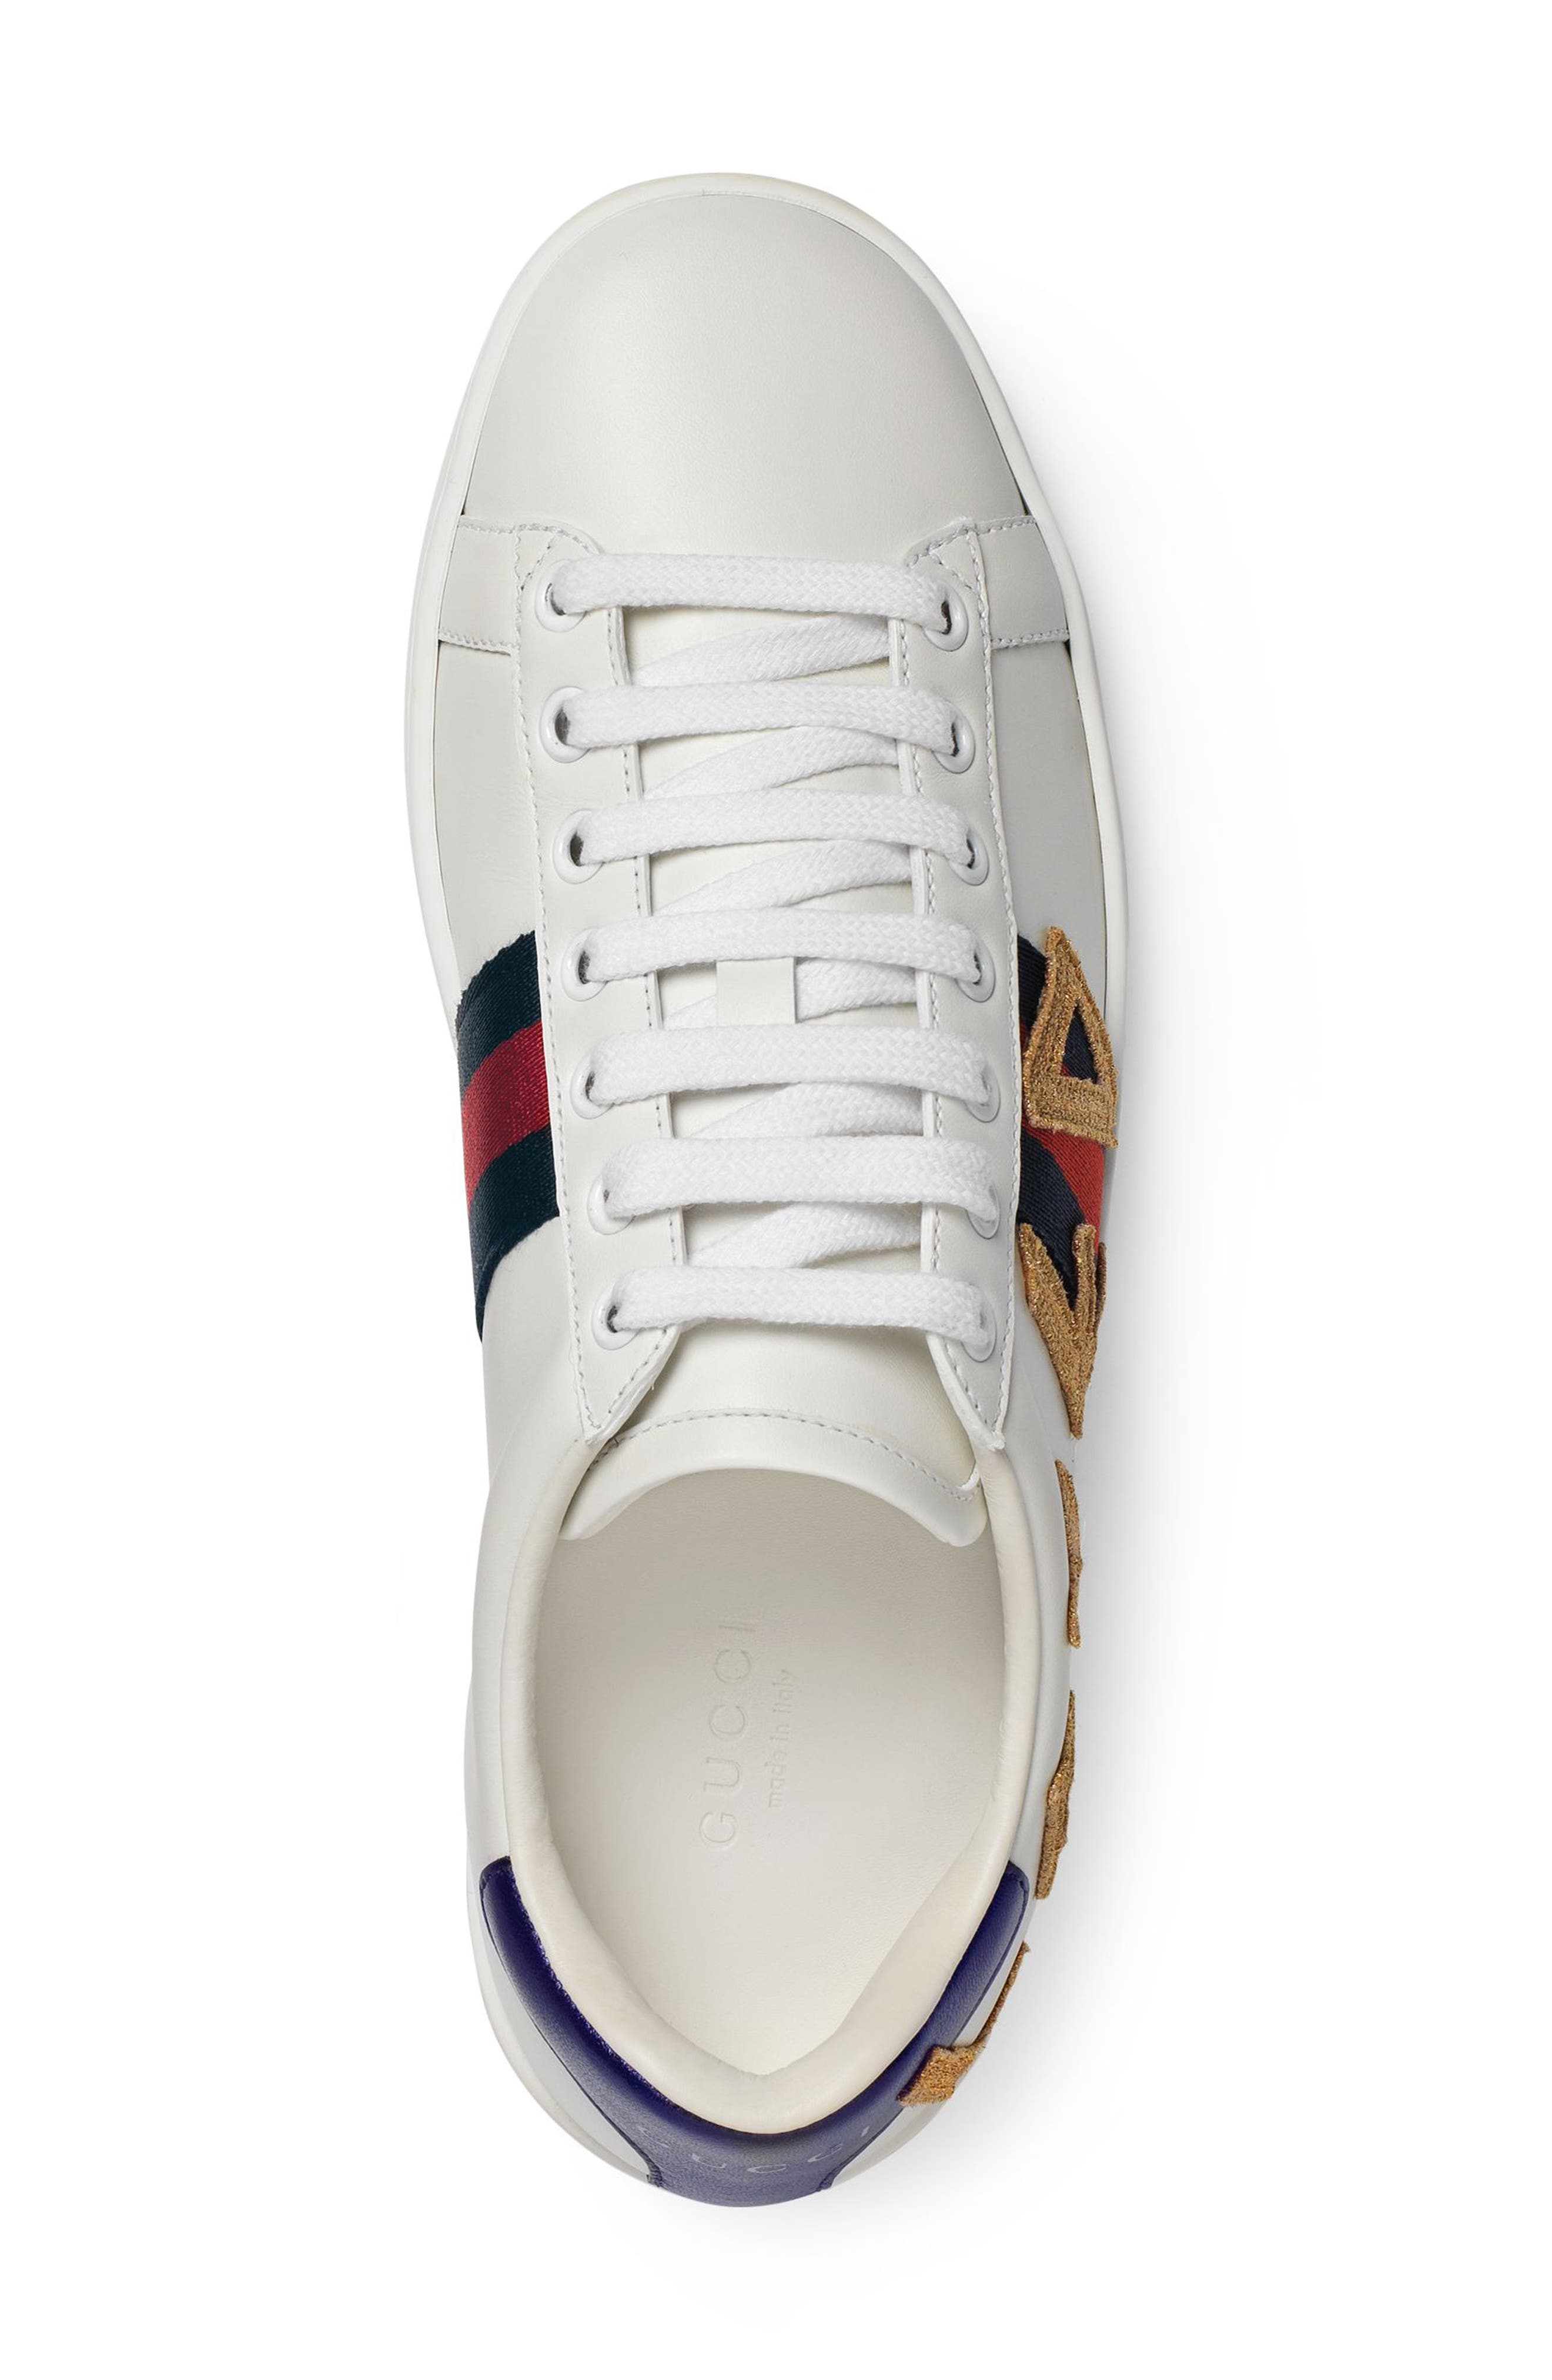 Alternate Image 3  - Gucci New Ace Loved Sneakers (Women)